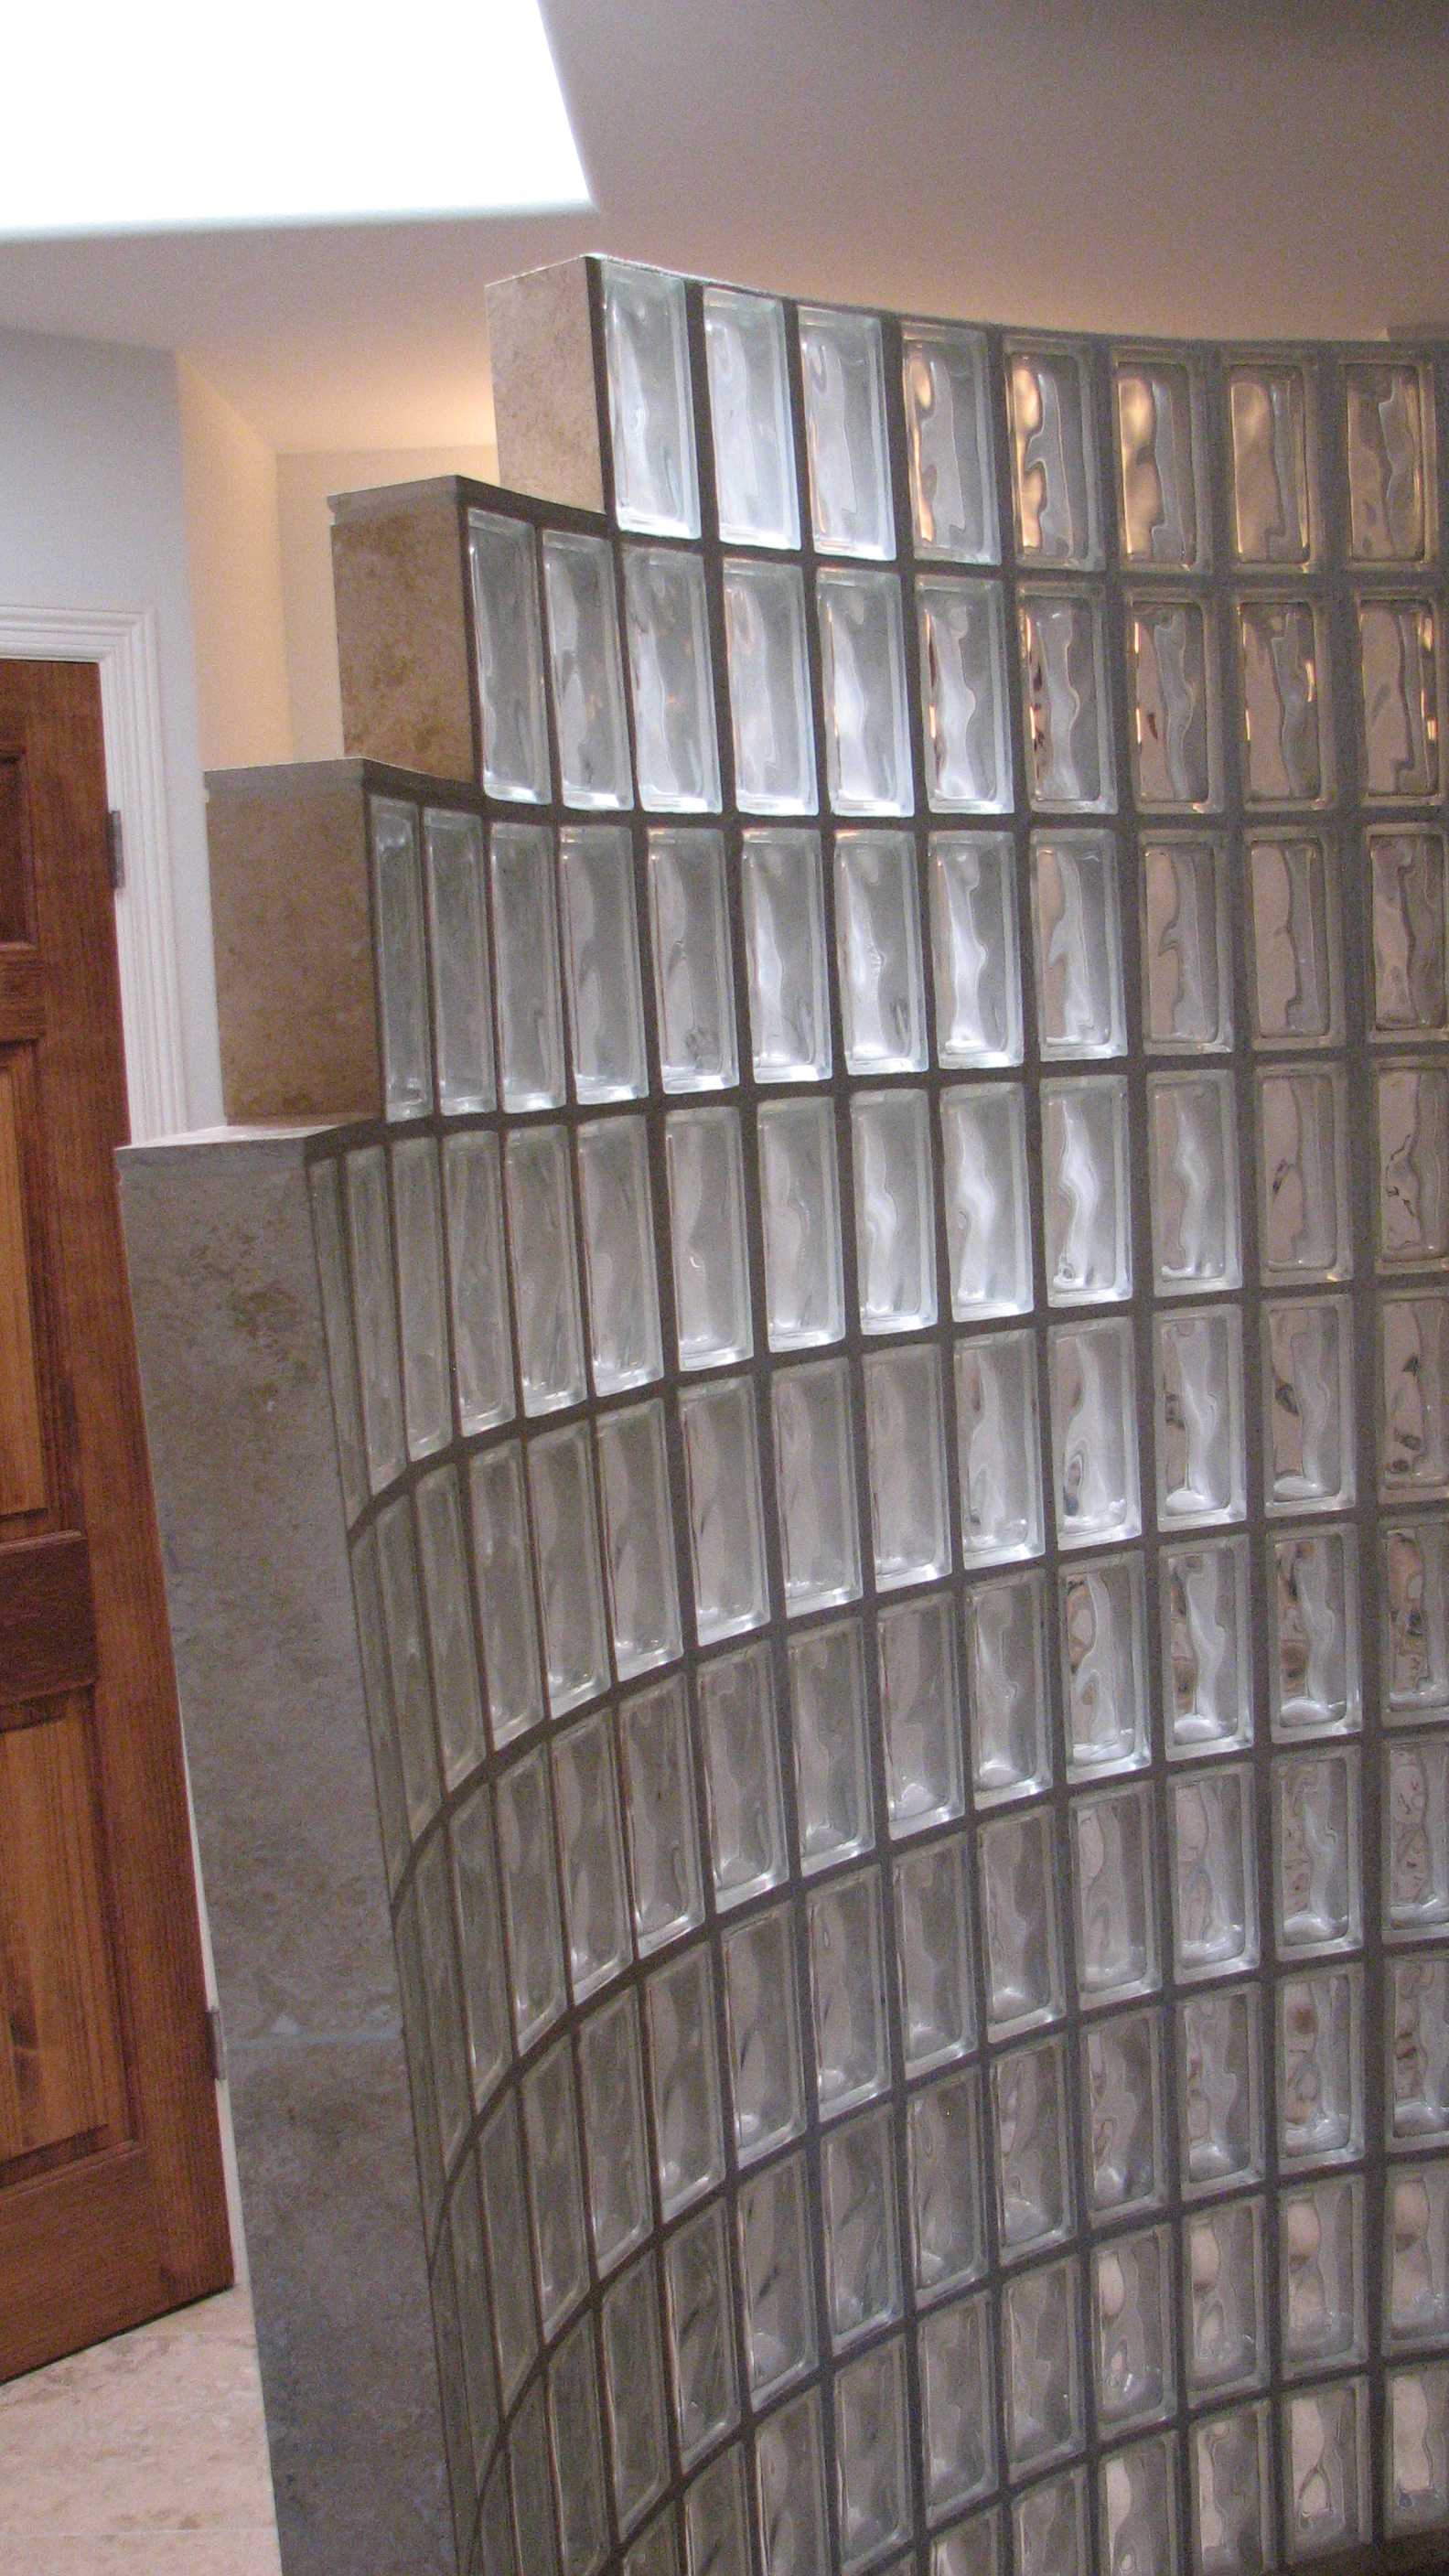 Glass blocks will become translucent water containing walls